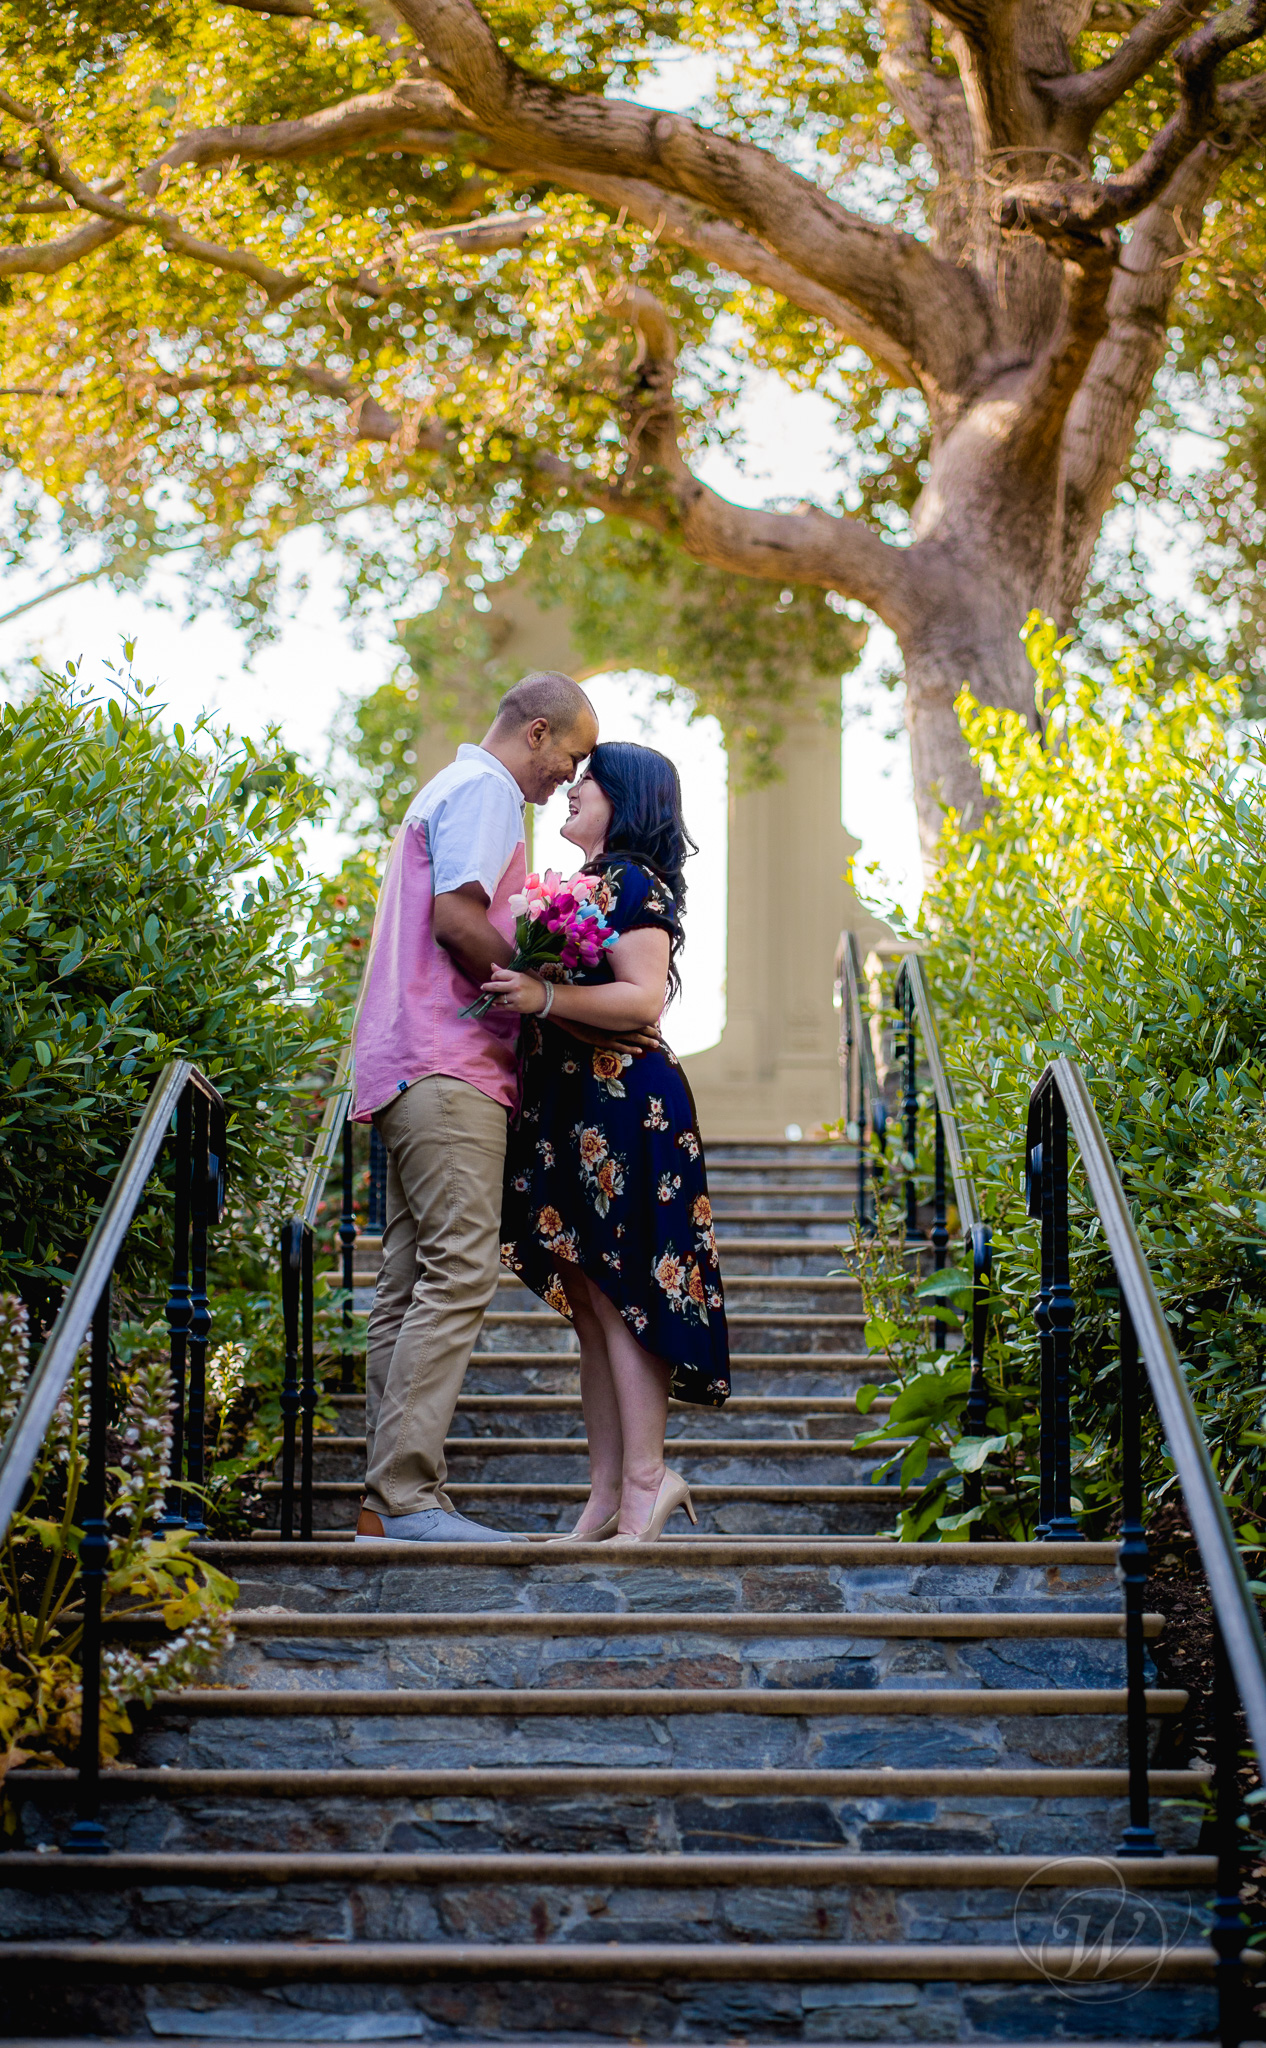 2019.06.16_Mosara-Brandon_Engagement_19.jpg